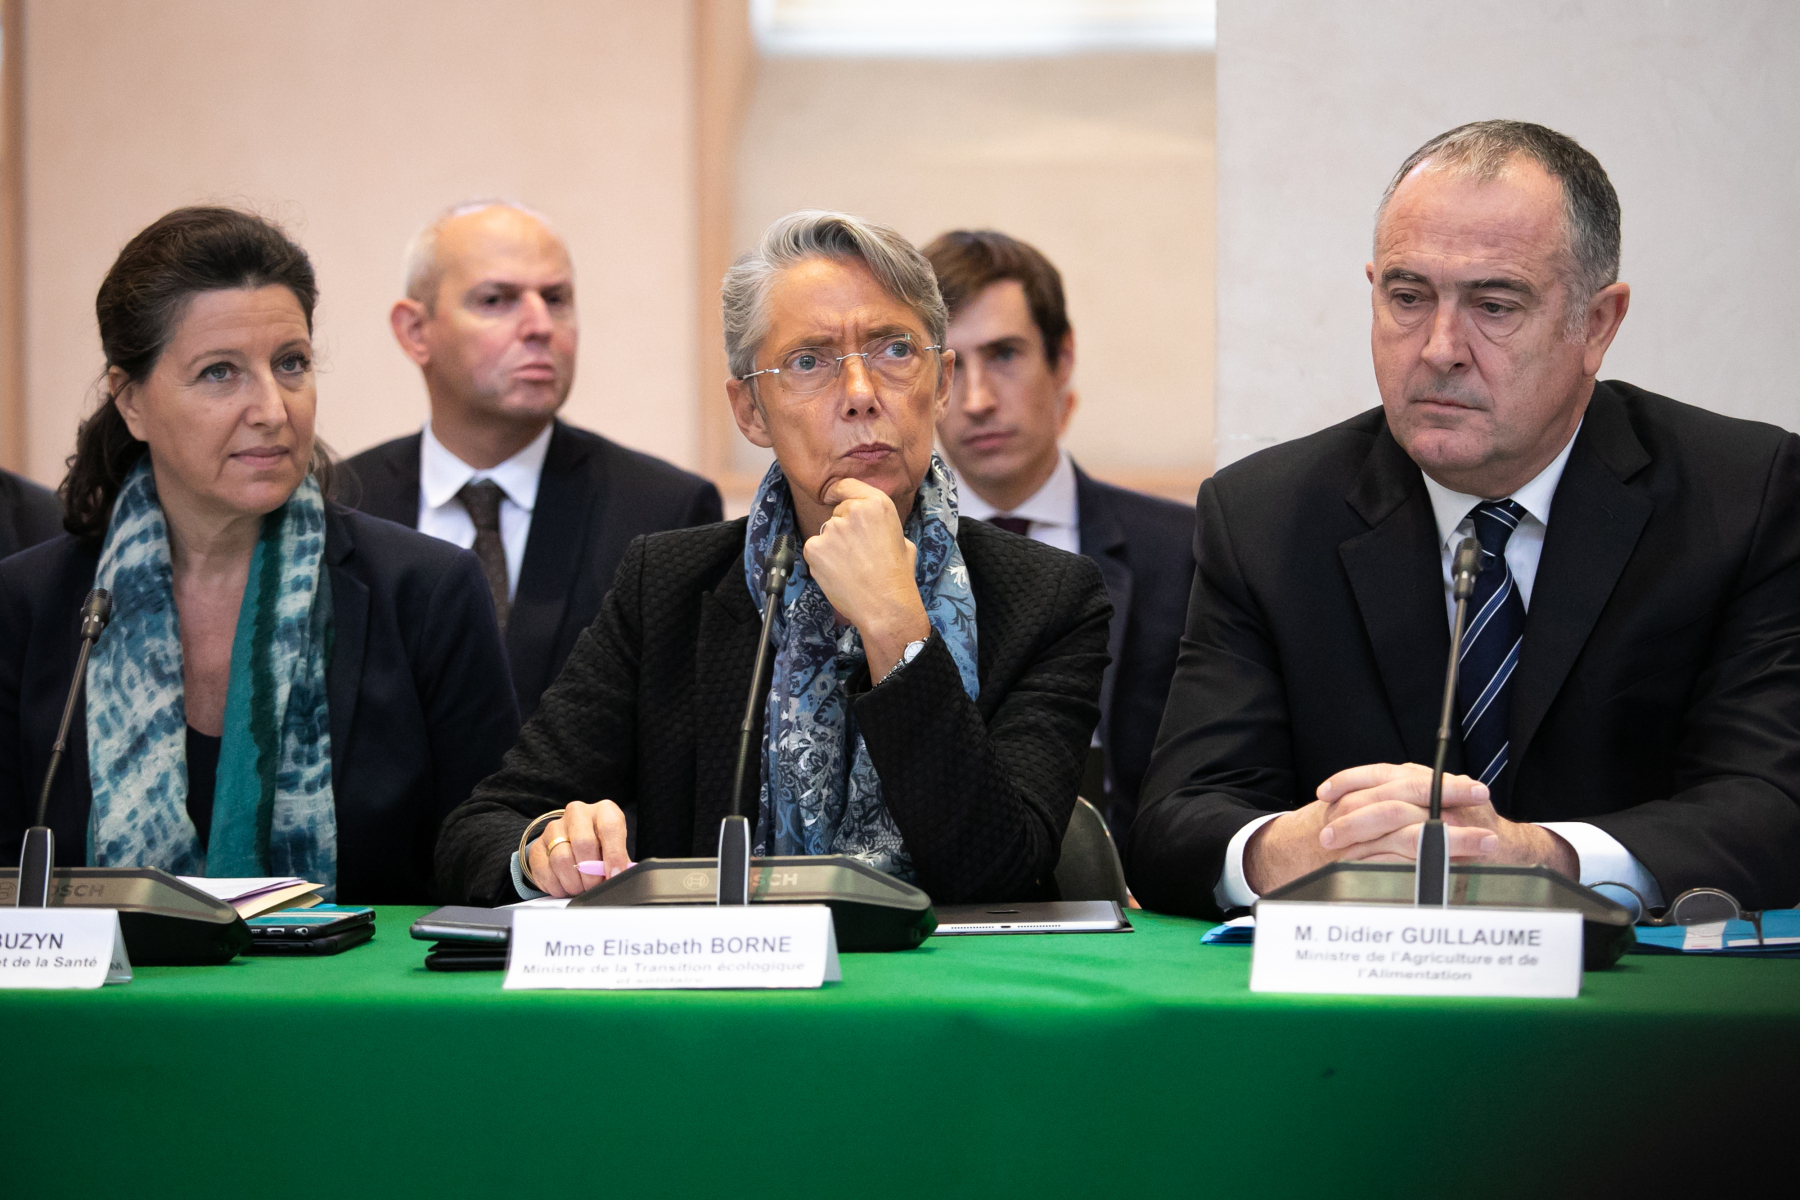 (From L) French Solidarity and Health Minister and hematologist professor Agnes Buzyn, French minister for Ecological and Solidarity Transition, Elisabeth Borne and French Agriculture Minister Didier Guillaume, attend a meeting to install a comity for transparency and communication followingthe fire of September 26 , 2019,  in Rouen, northwestern France, on October 12, 2019.